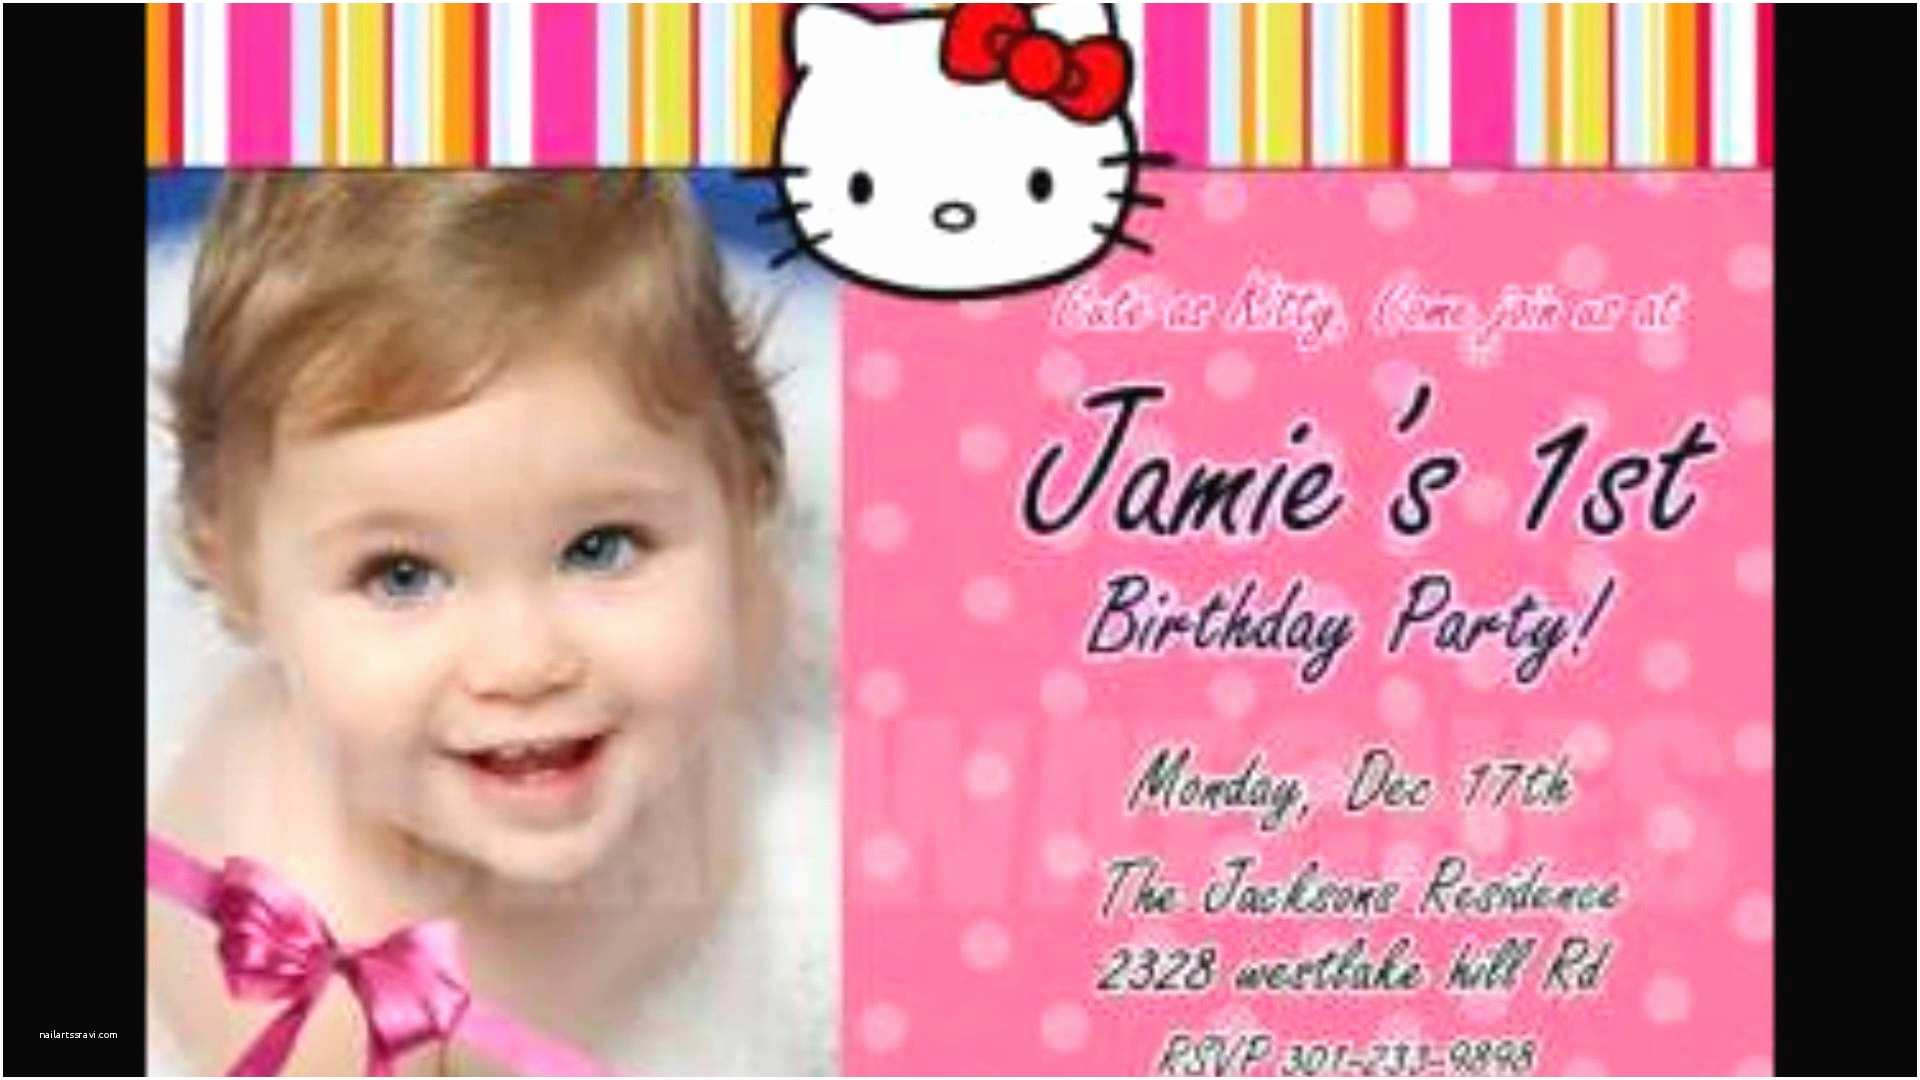 Personalized Birthday Invitations Create Own Personalized Birthday Invitations Modern